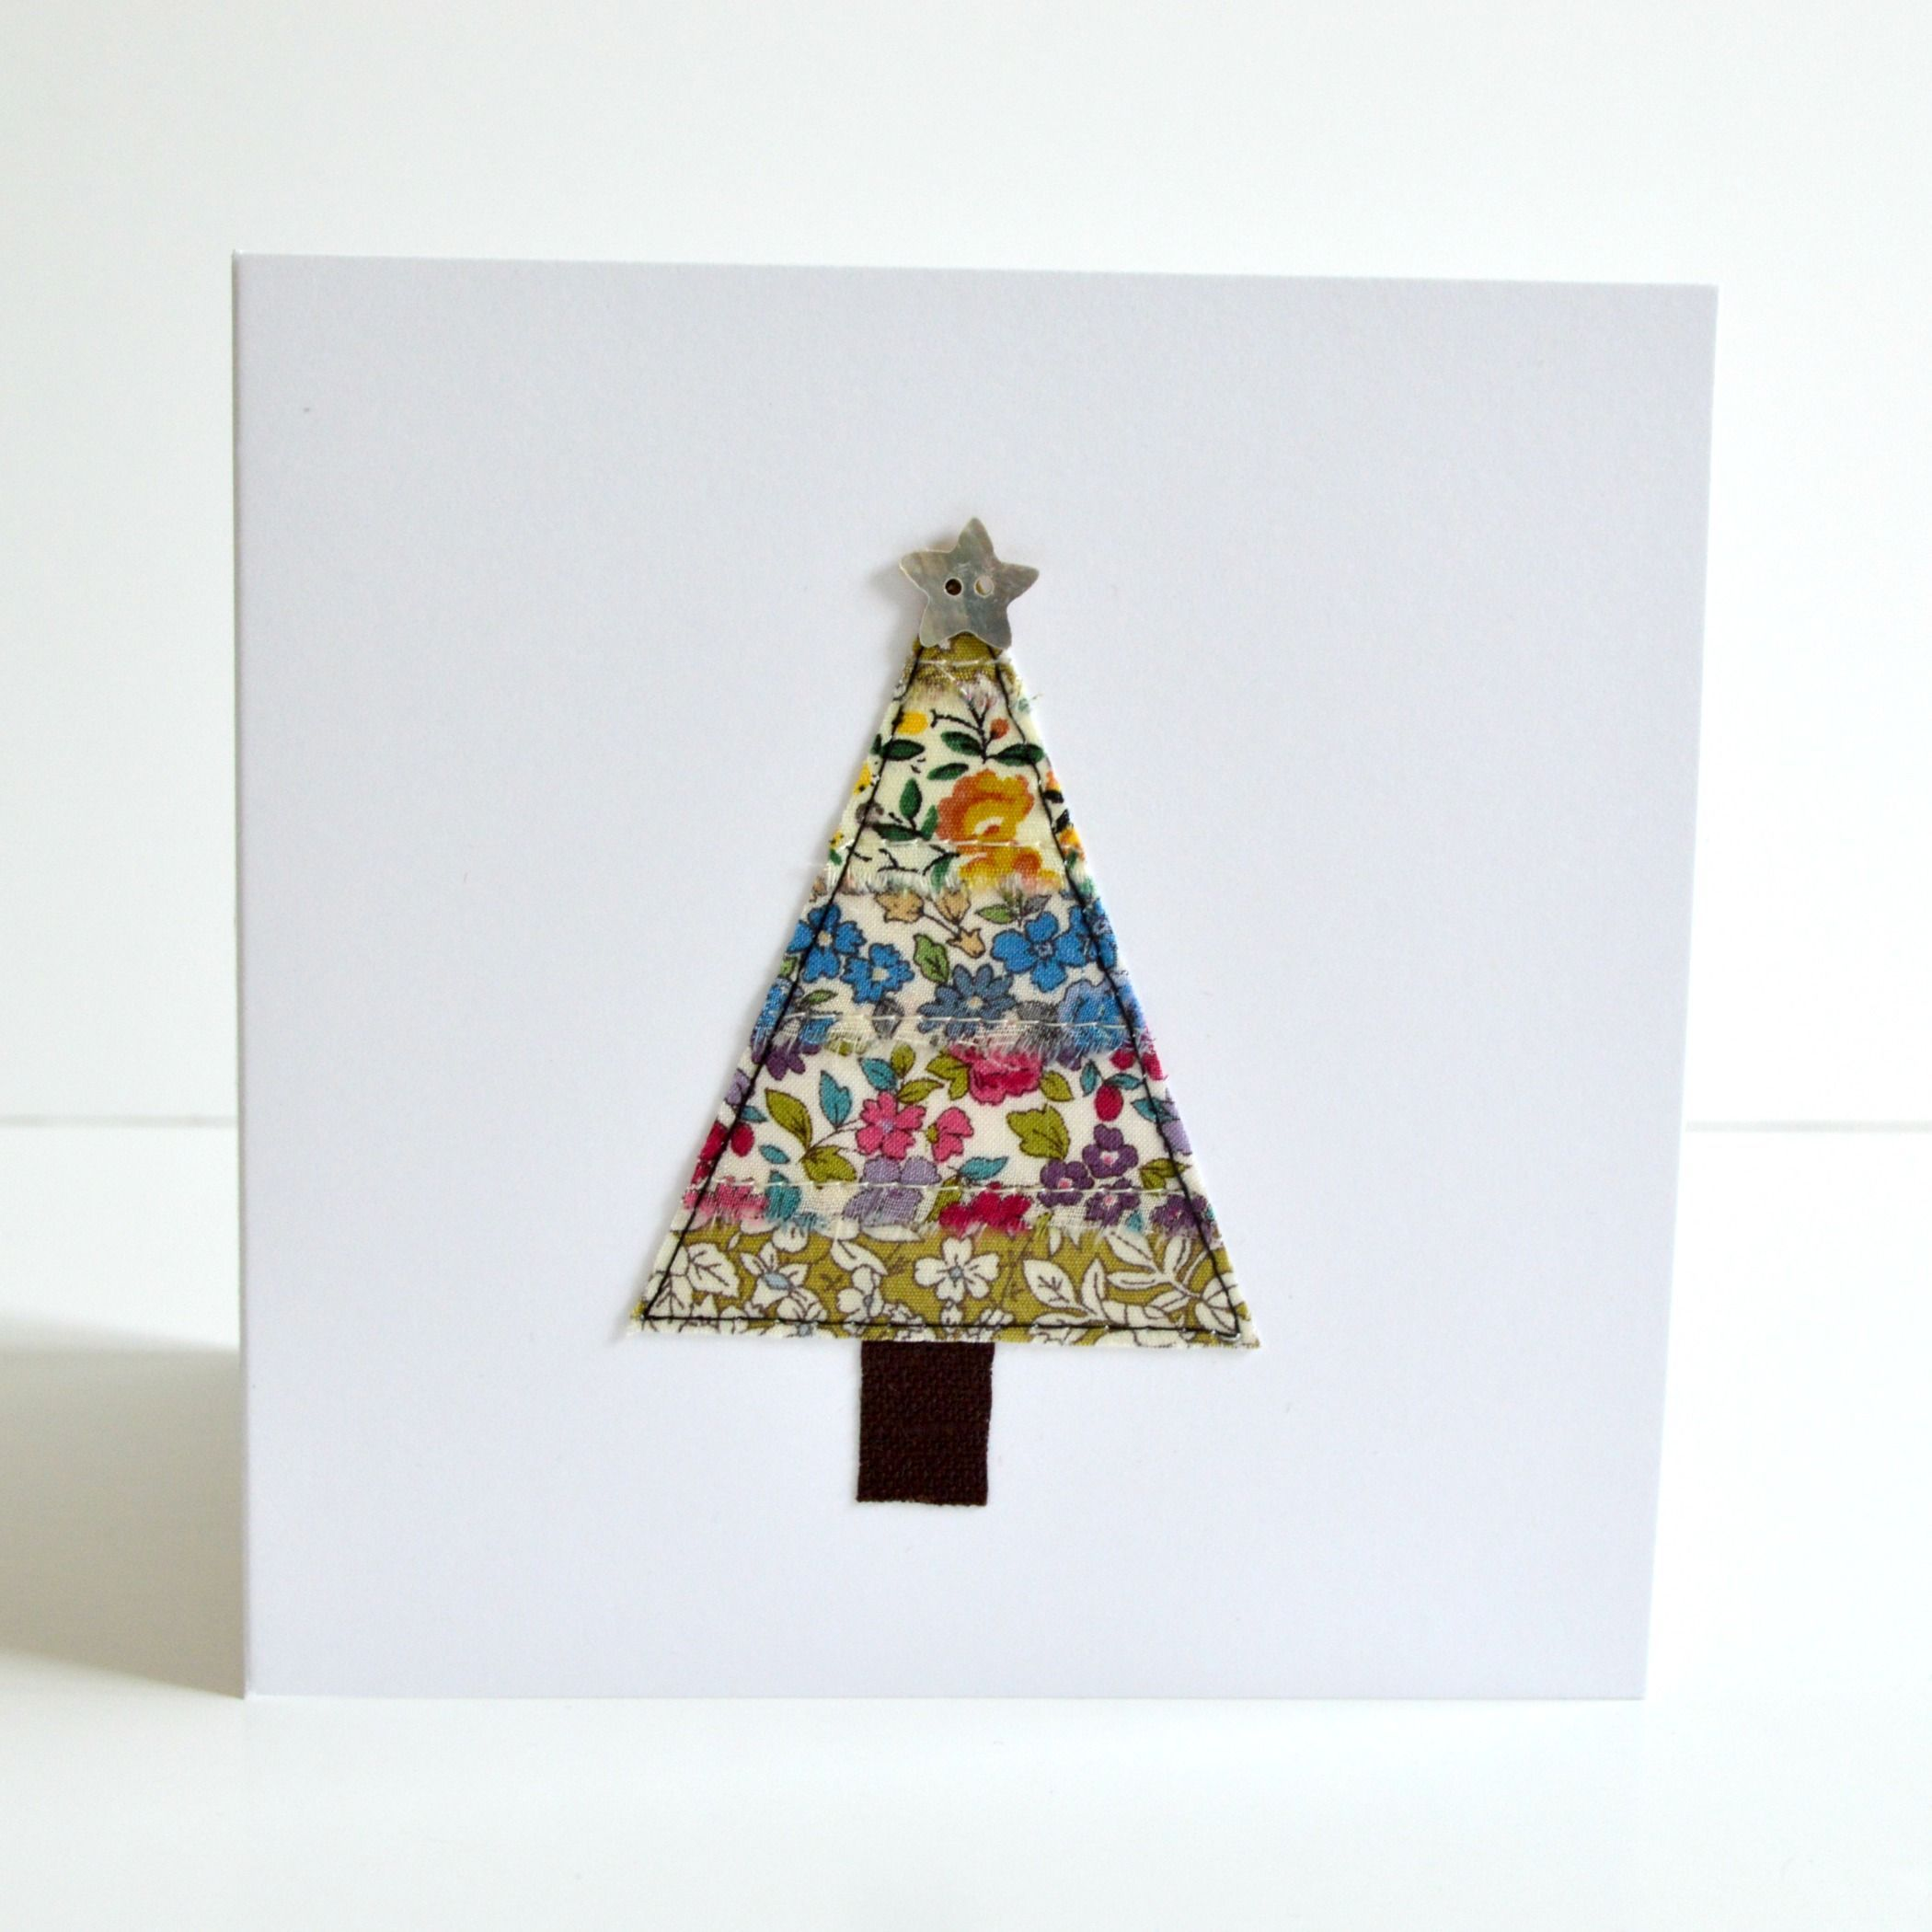 Embroidered Fabric Christmas Tree Christmas Card By Stitch Galore